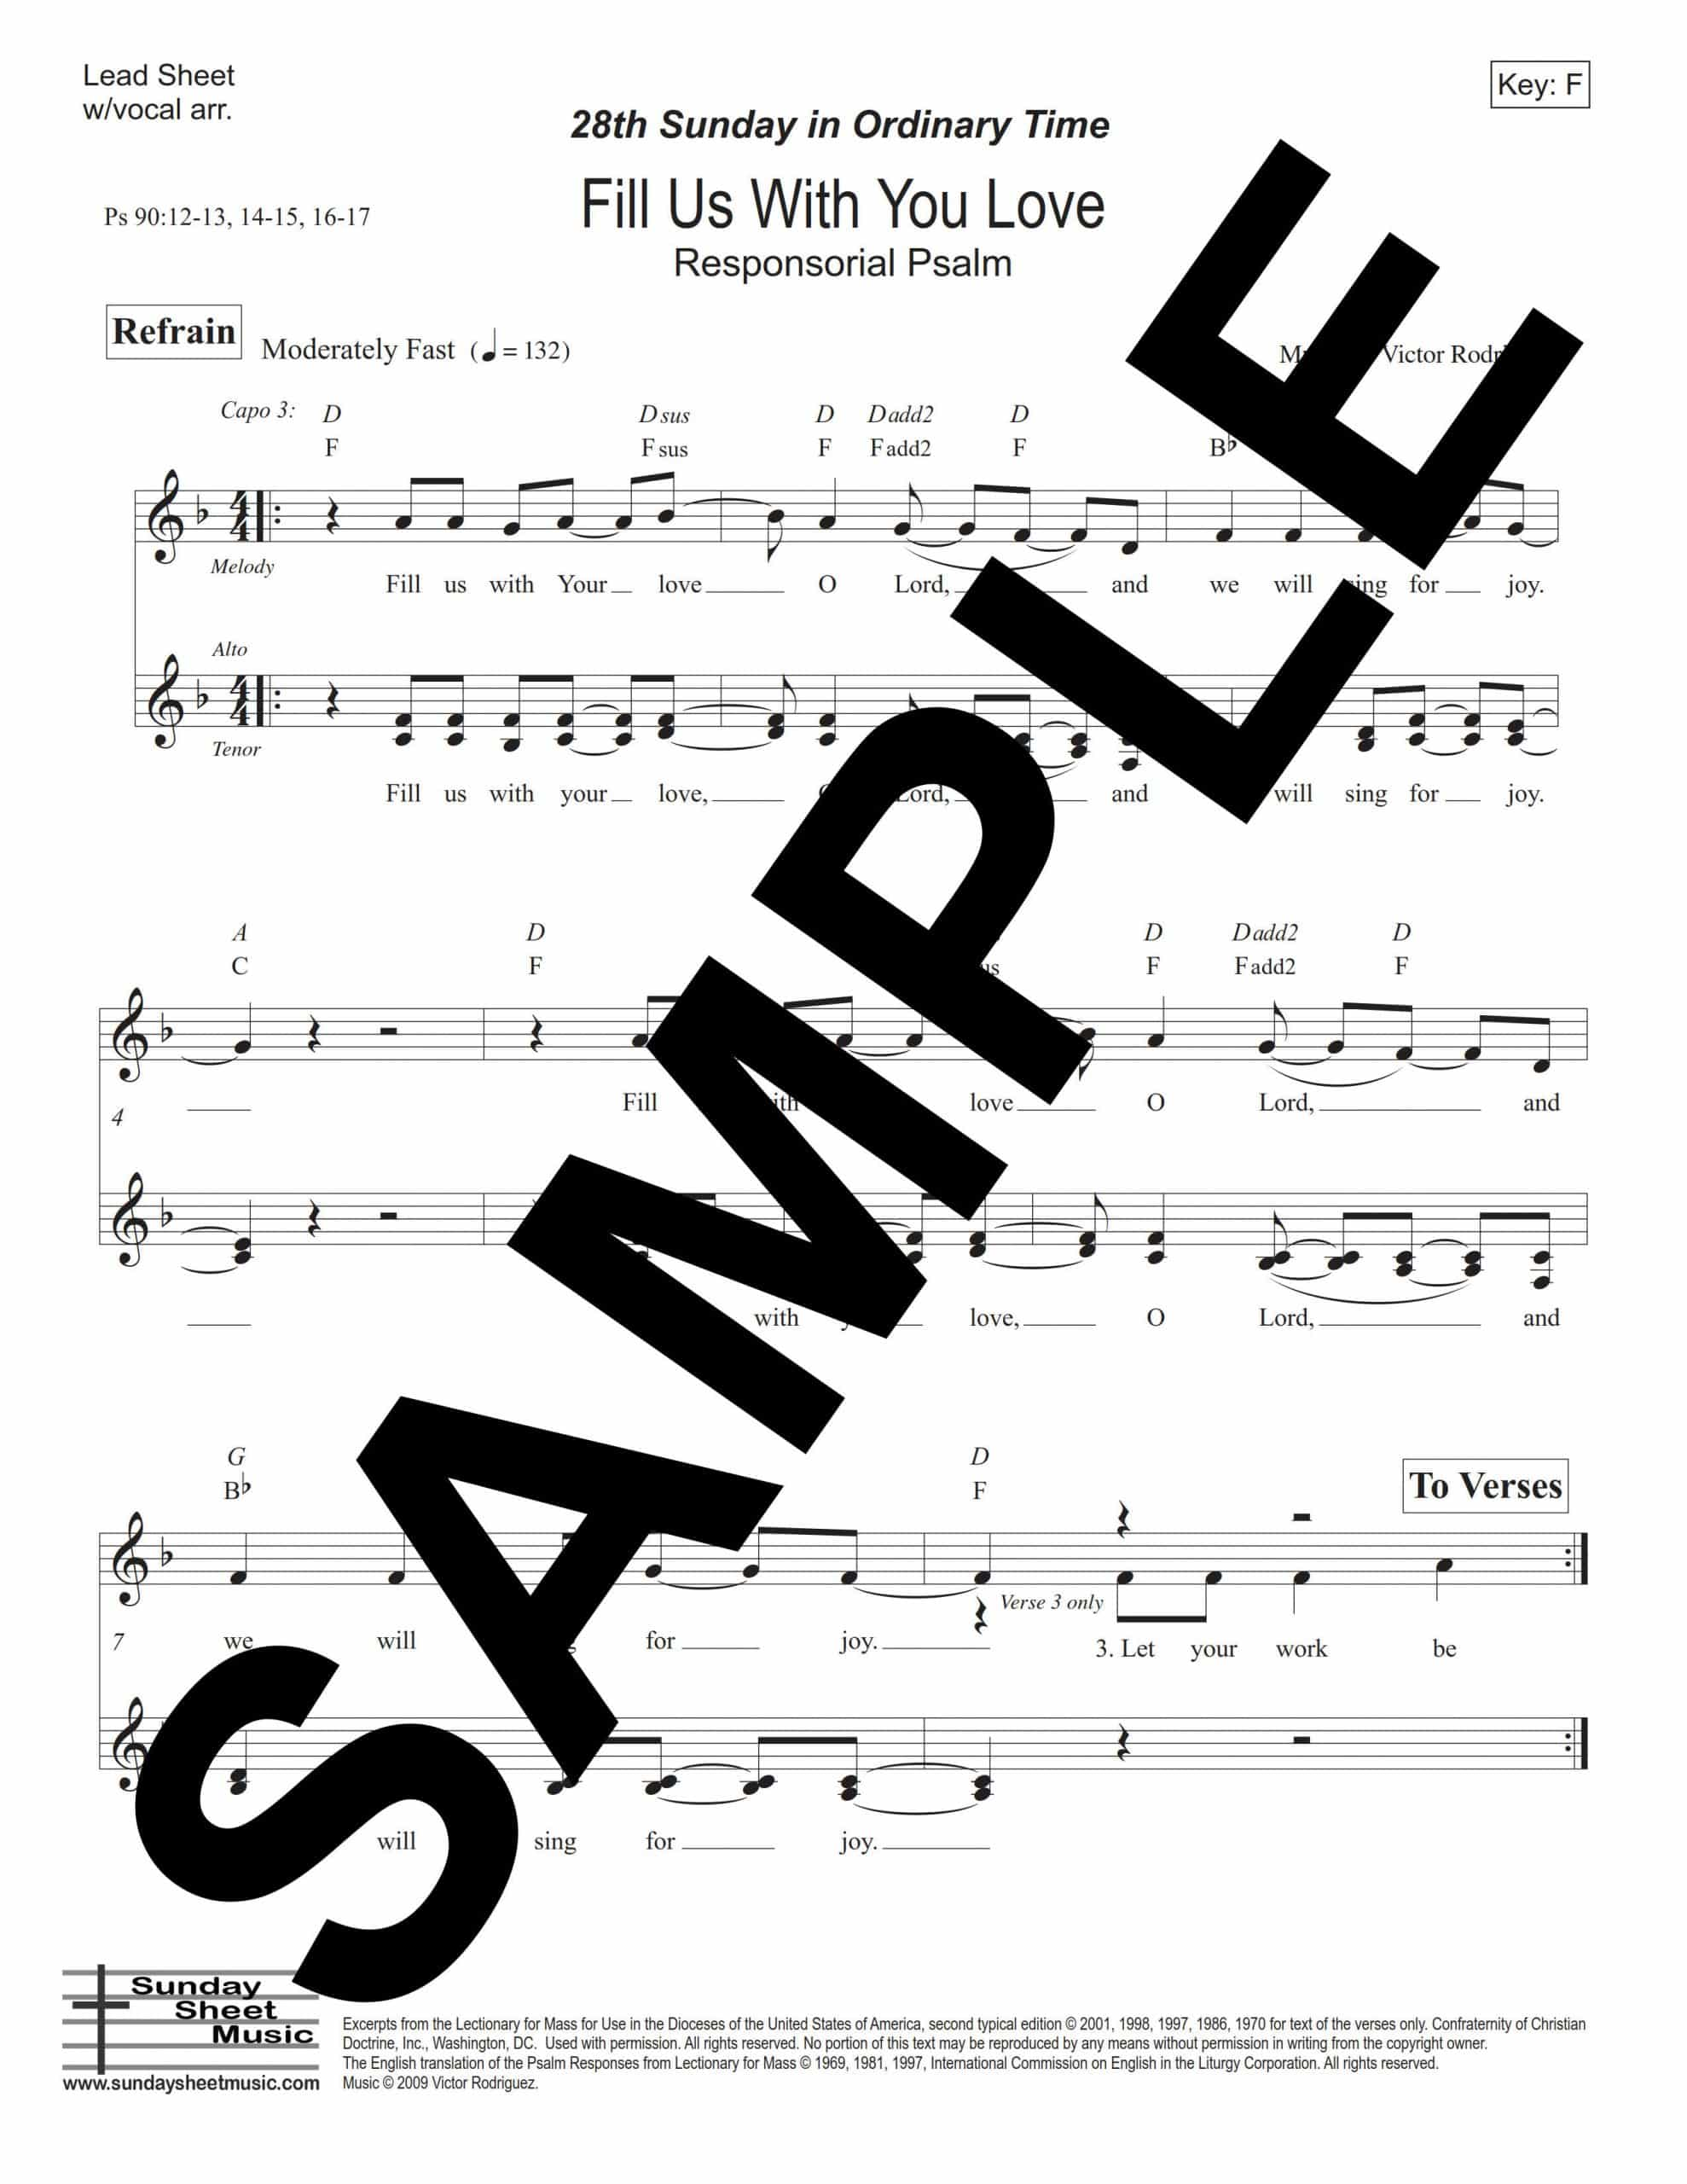 28th Sunday Fill Us With Your Love Ps 90 va Sample Lead Sheet scaled